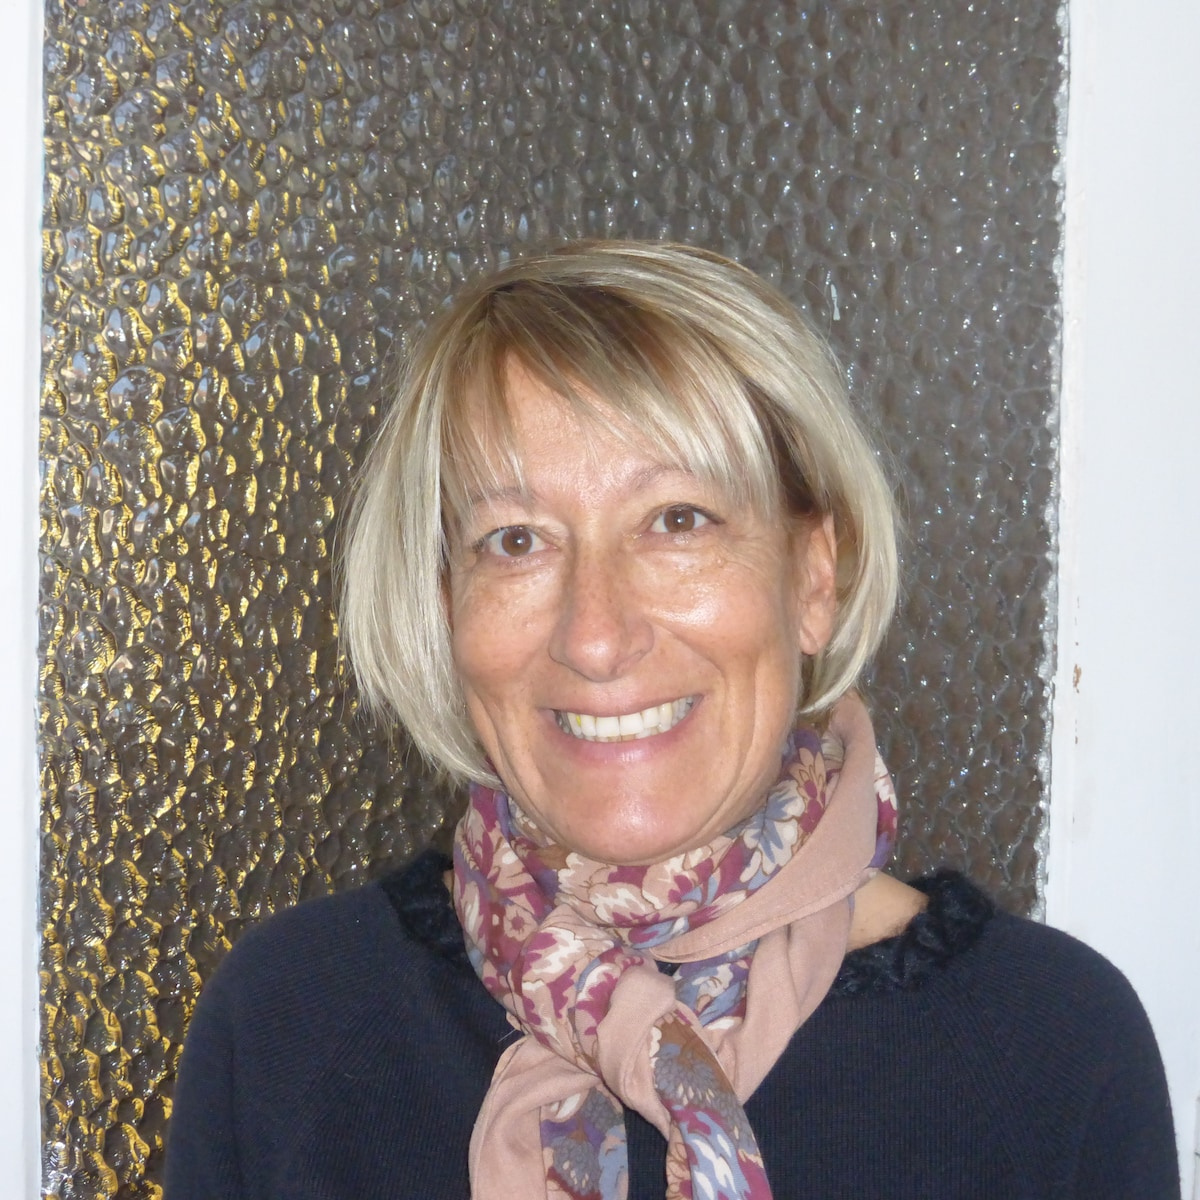 Corinne from Canet-en-Roussillon